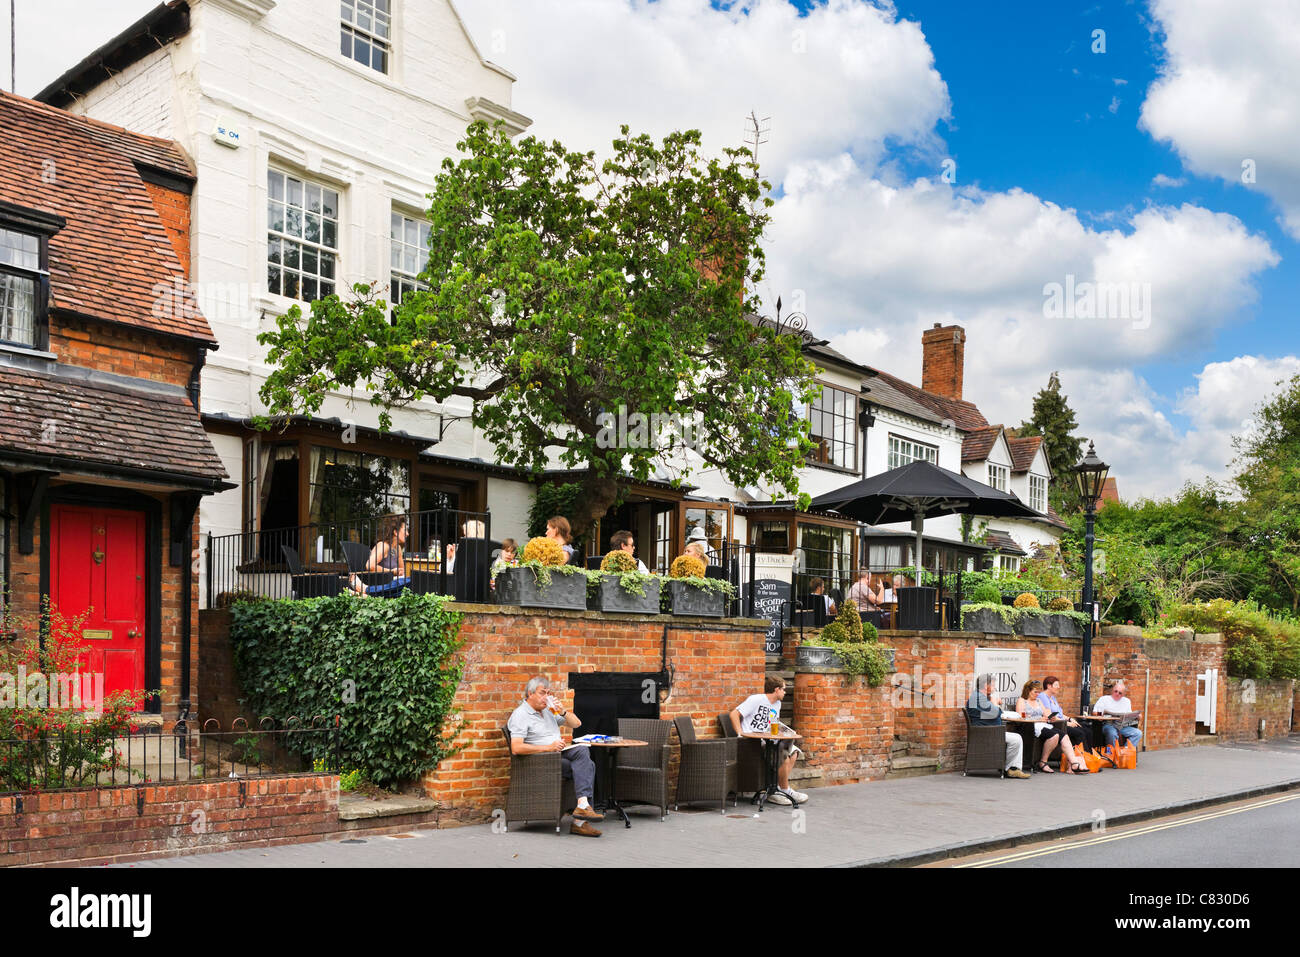 The famous Dirty Duck pub near the RSC Theatre, Stratford-upon-Avon, Warwickshire, England, UK - Stock Image